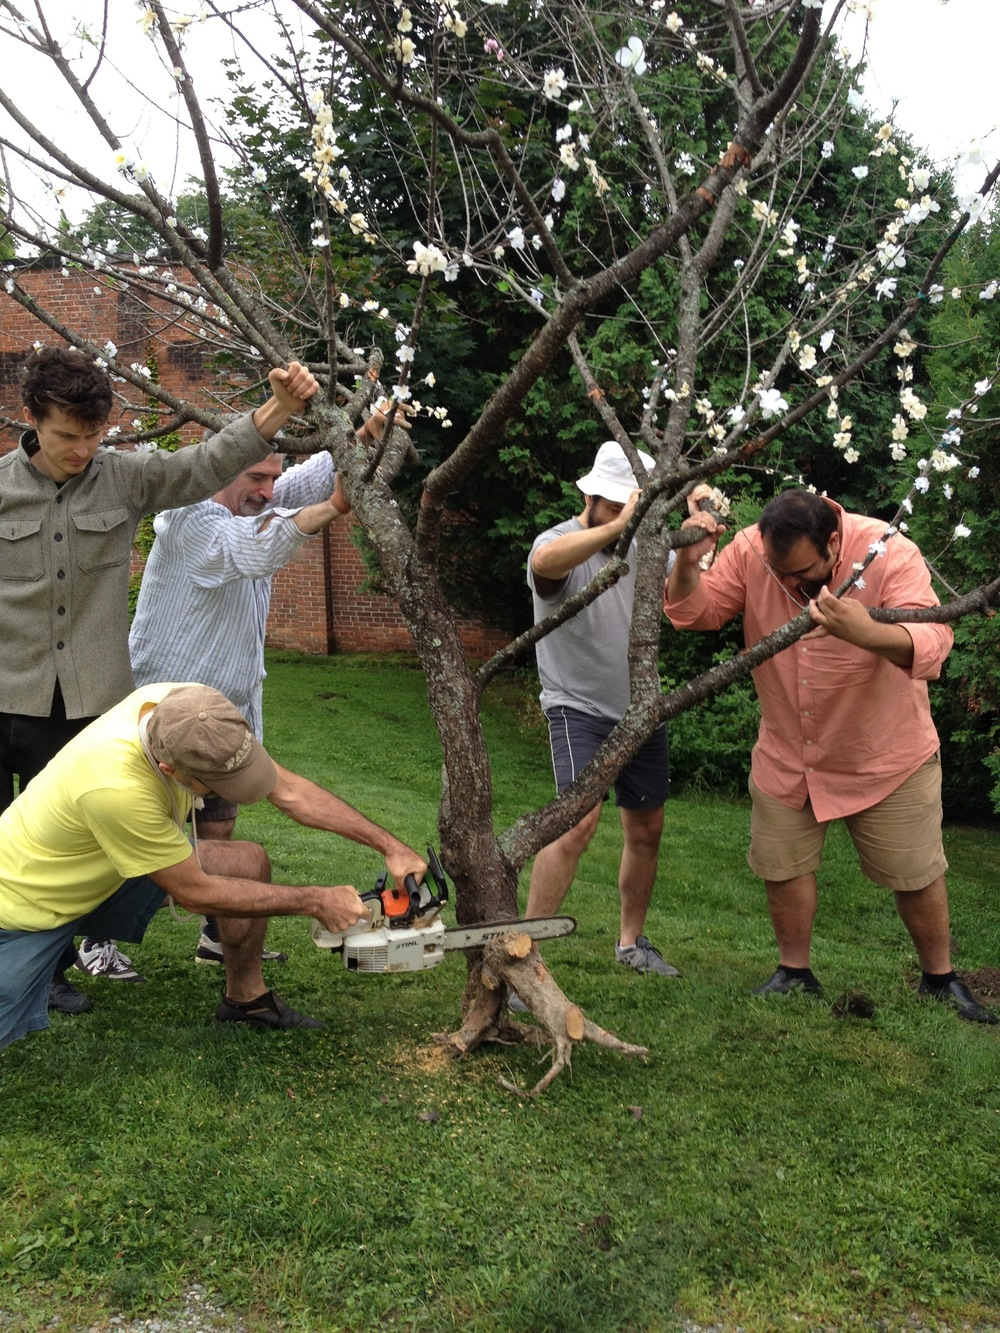 Company members install a real cherry tree that was resurrected with silk blossoms for The Cherry Orchard – one example of LRT's dedication to making theatre simple yet specific.